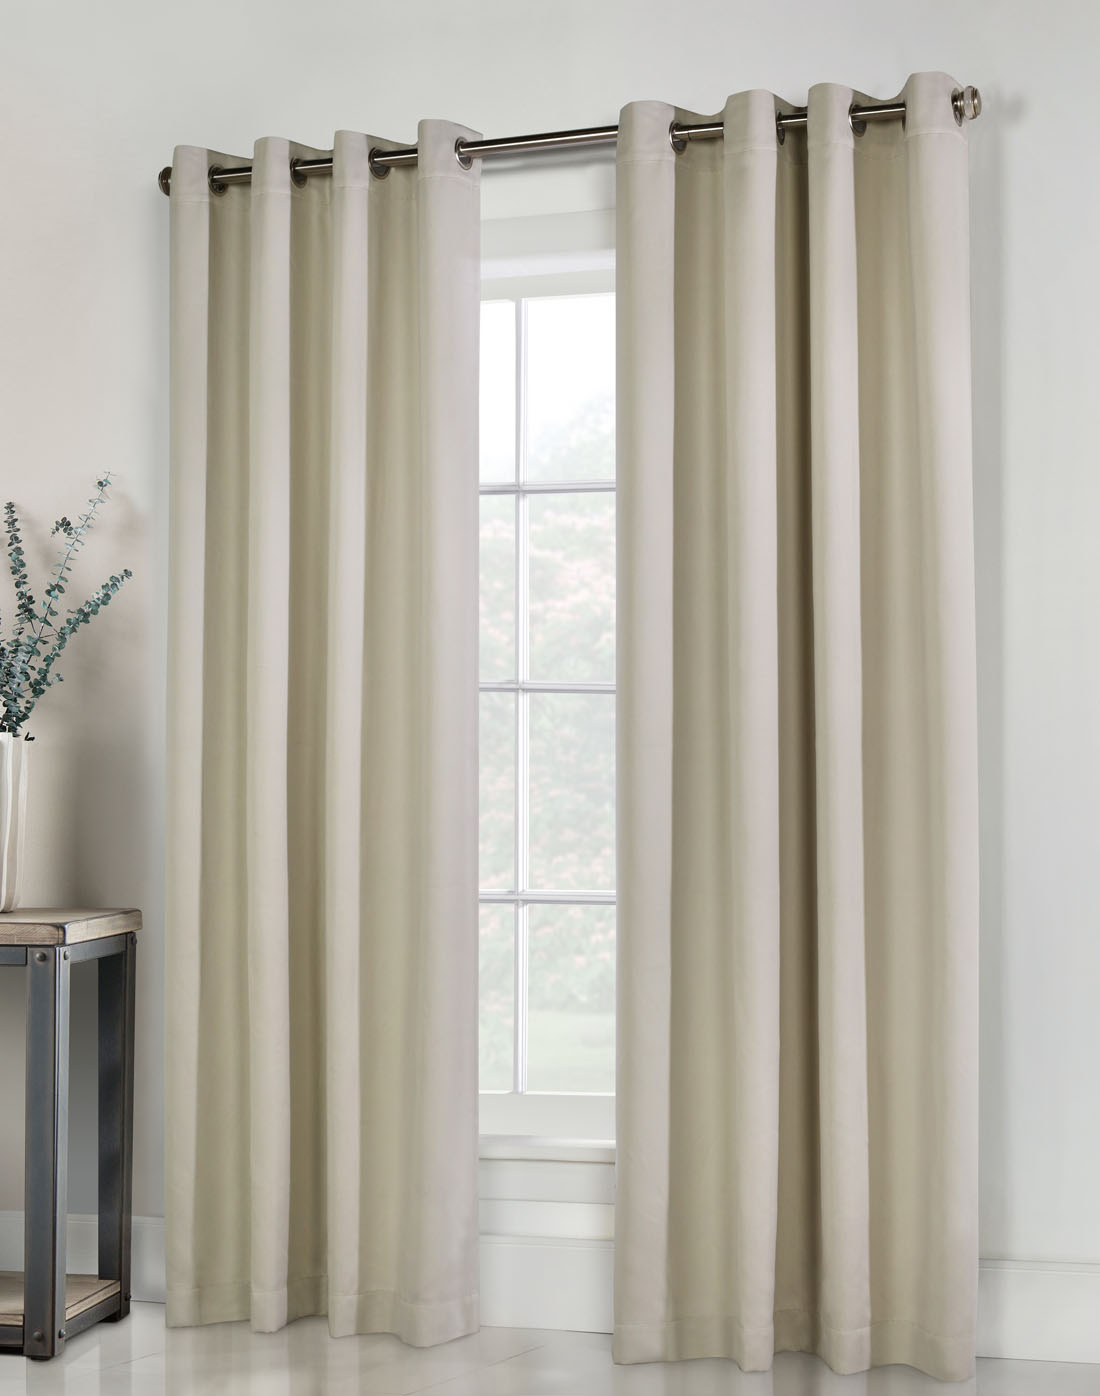 Thermal Grommet Top Curtains – Grommet Top Insulated Panels For Gray Barn Dogwood Floral Curtain Panel Pairs (View 12 of 20)